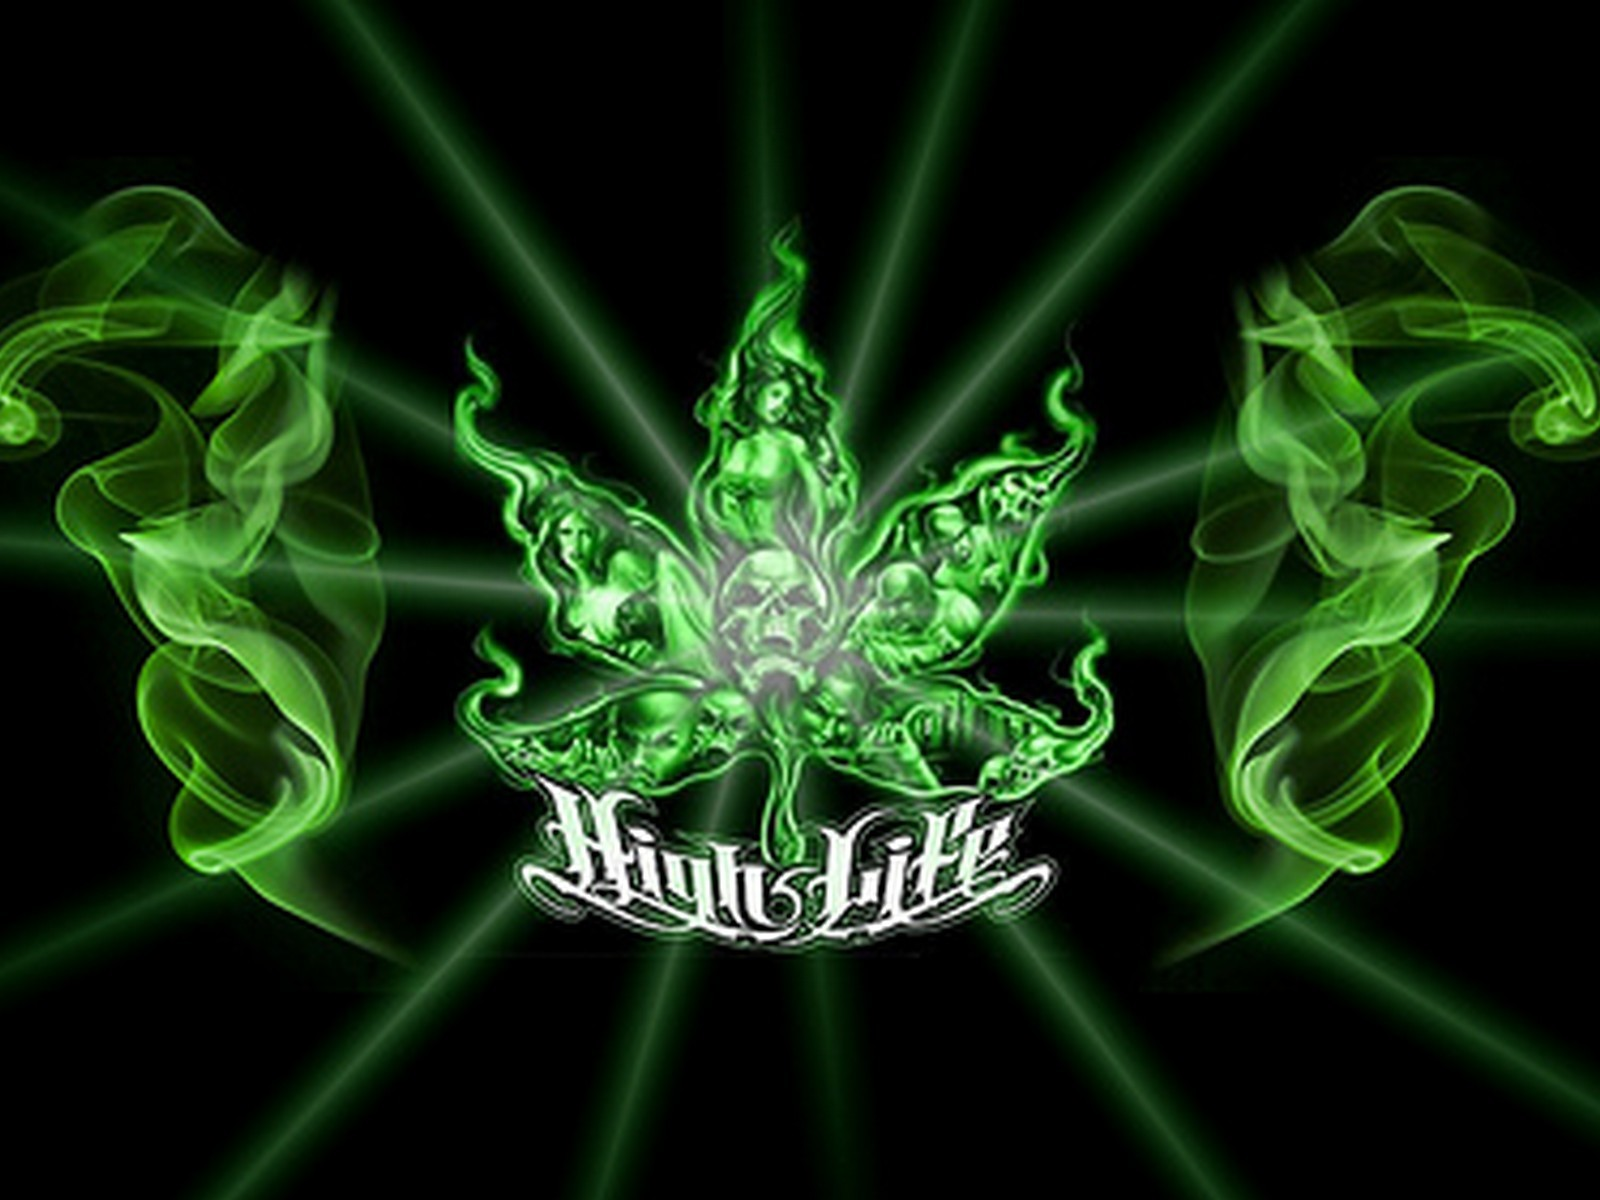 Dope Weed Quotes Dope weed quotes   viewing 1600x1200